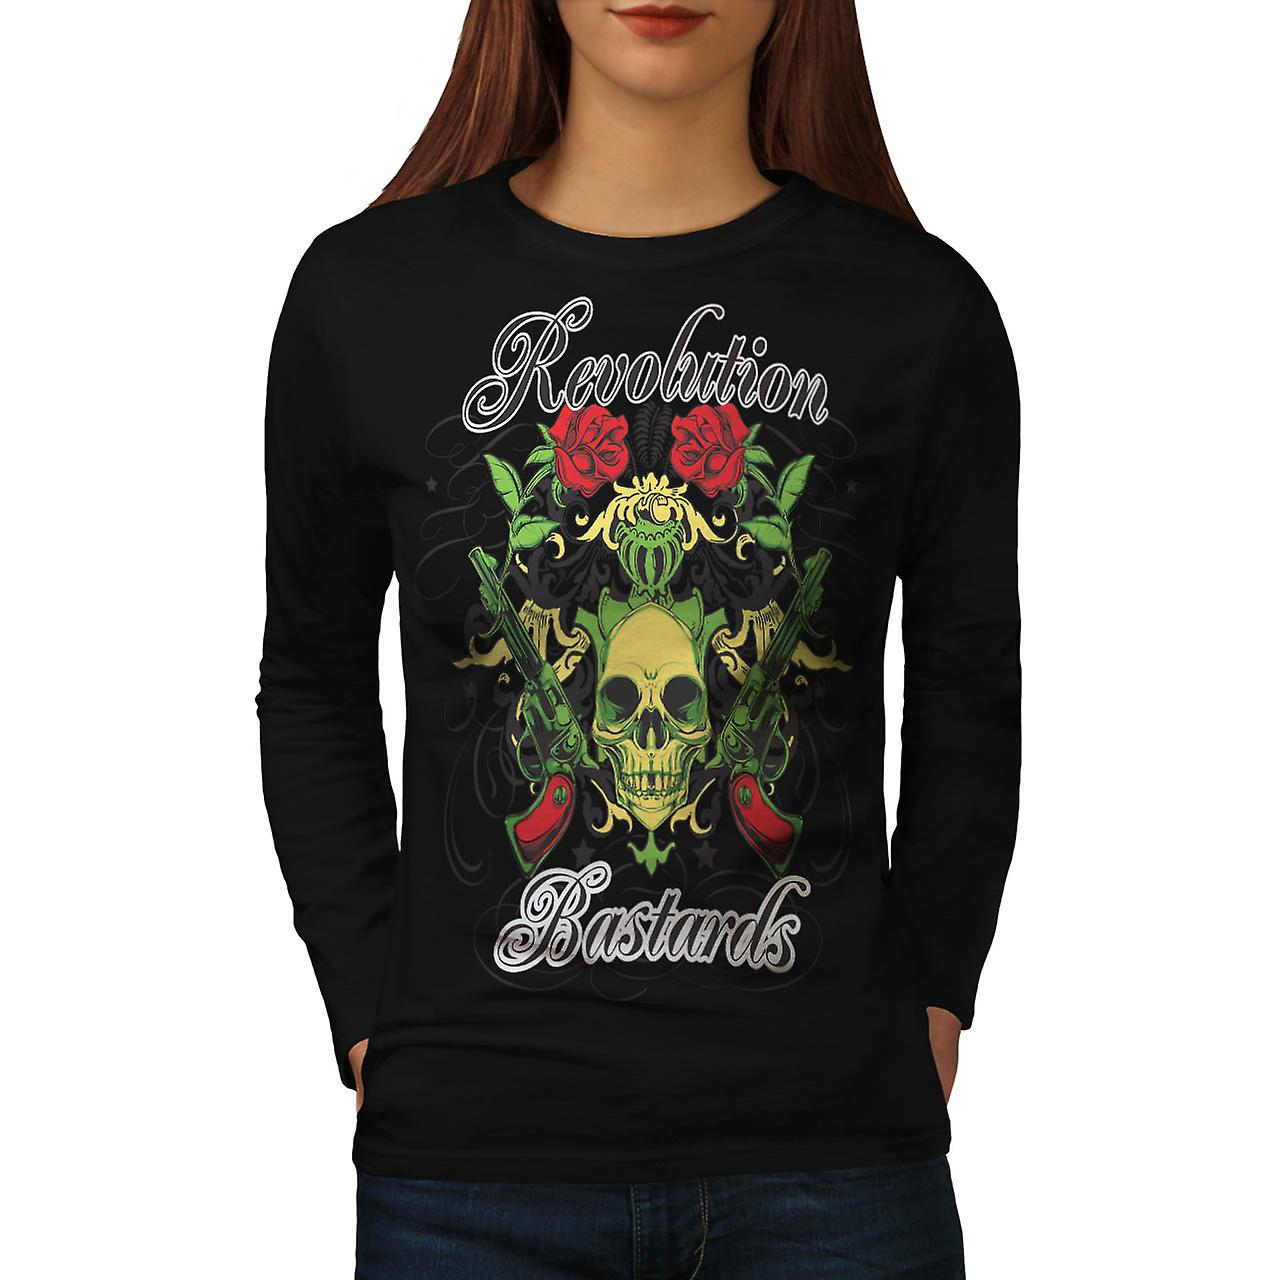 Revolution Bastards Roses Guns Women Black Long Sleeve T-shirt | Wellcoda